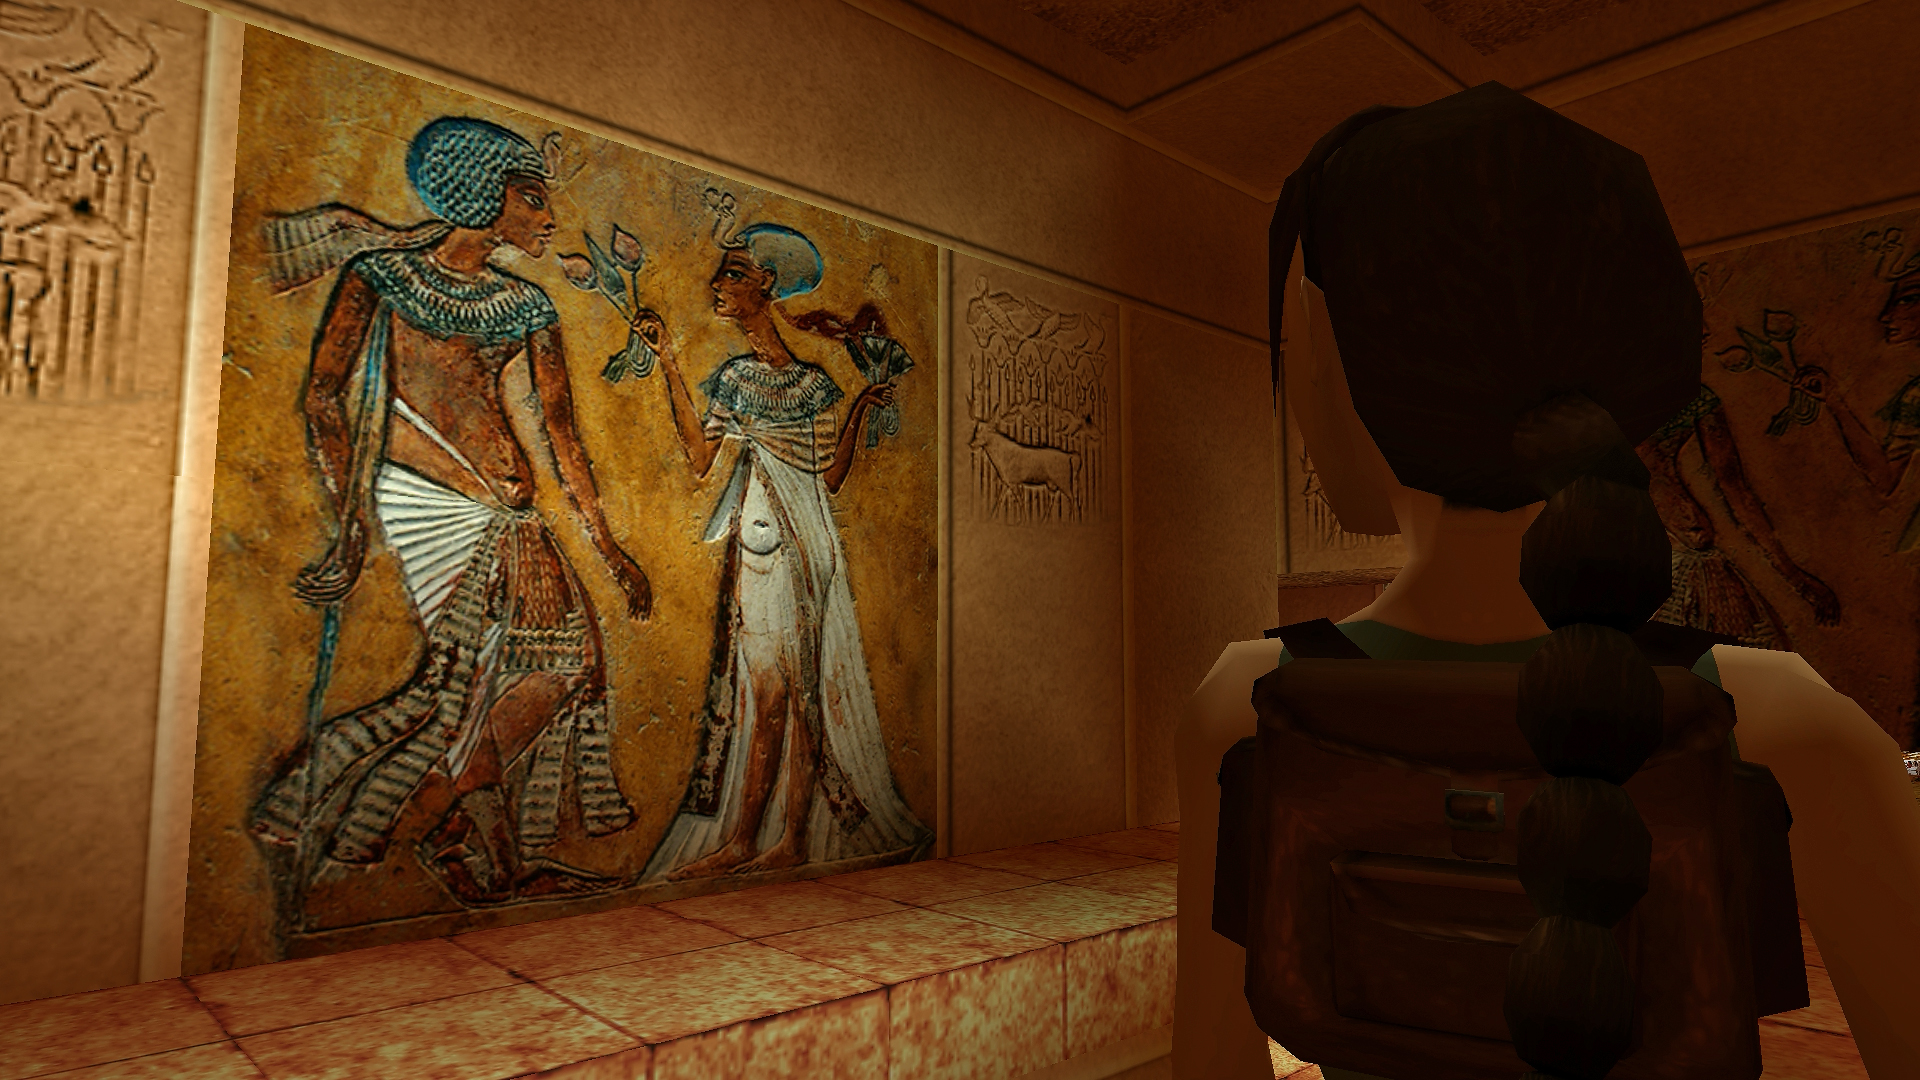 Tomb Raider 4 - Cleopatras Palaces Remastered